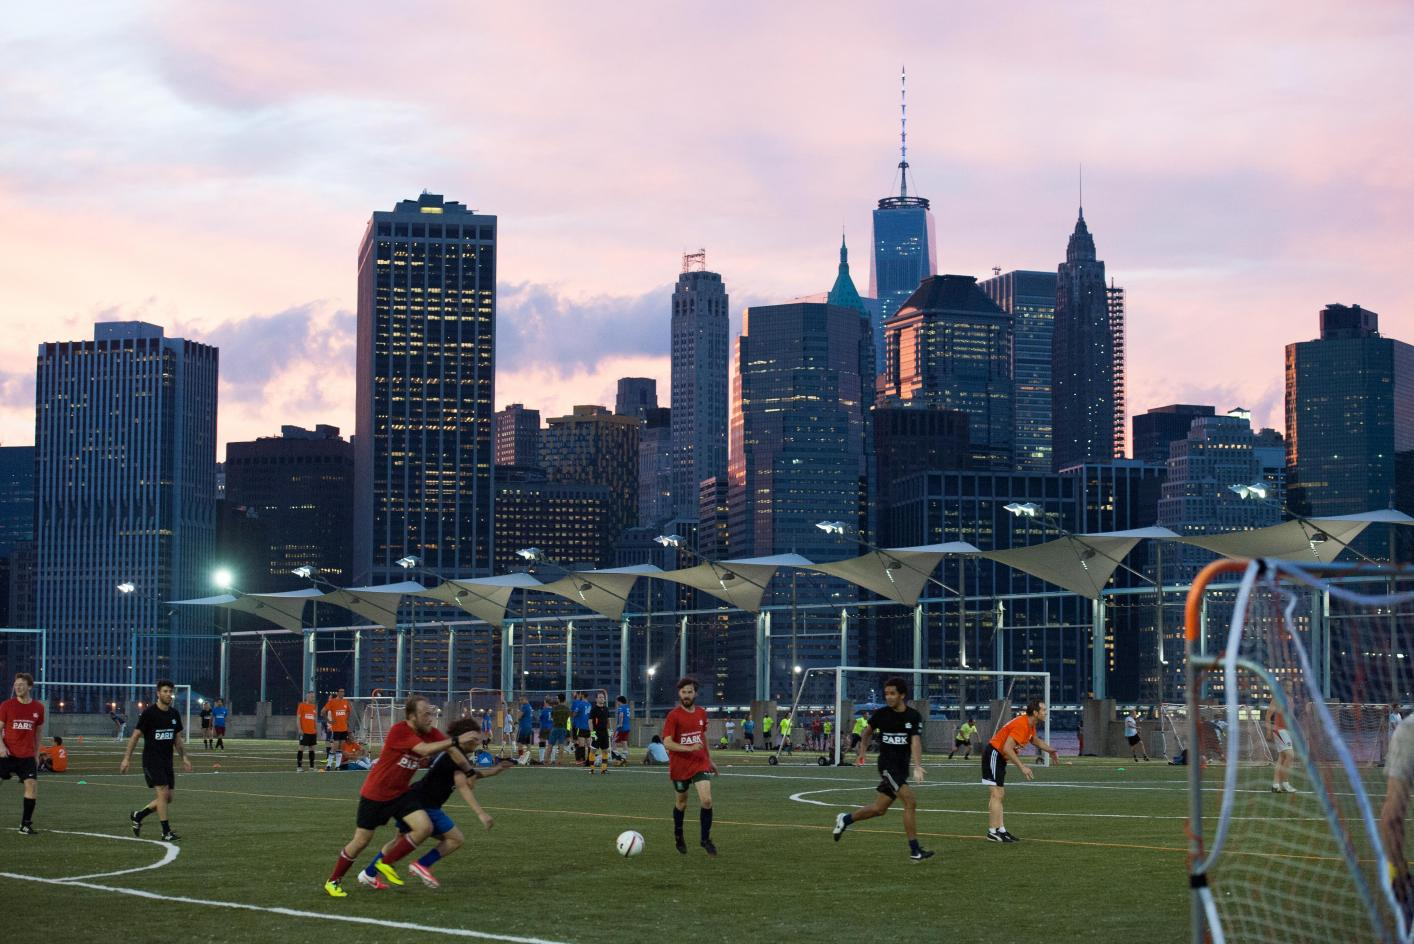 Where to play Amateur Co-Ed Drop in or Pick Up Soccer in New York, Manhattan area